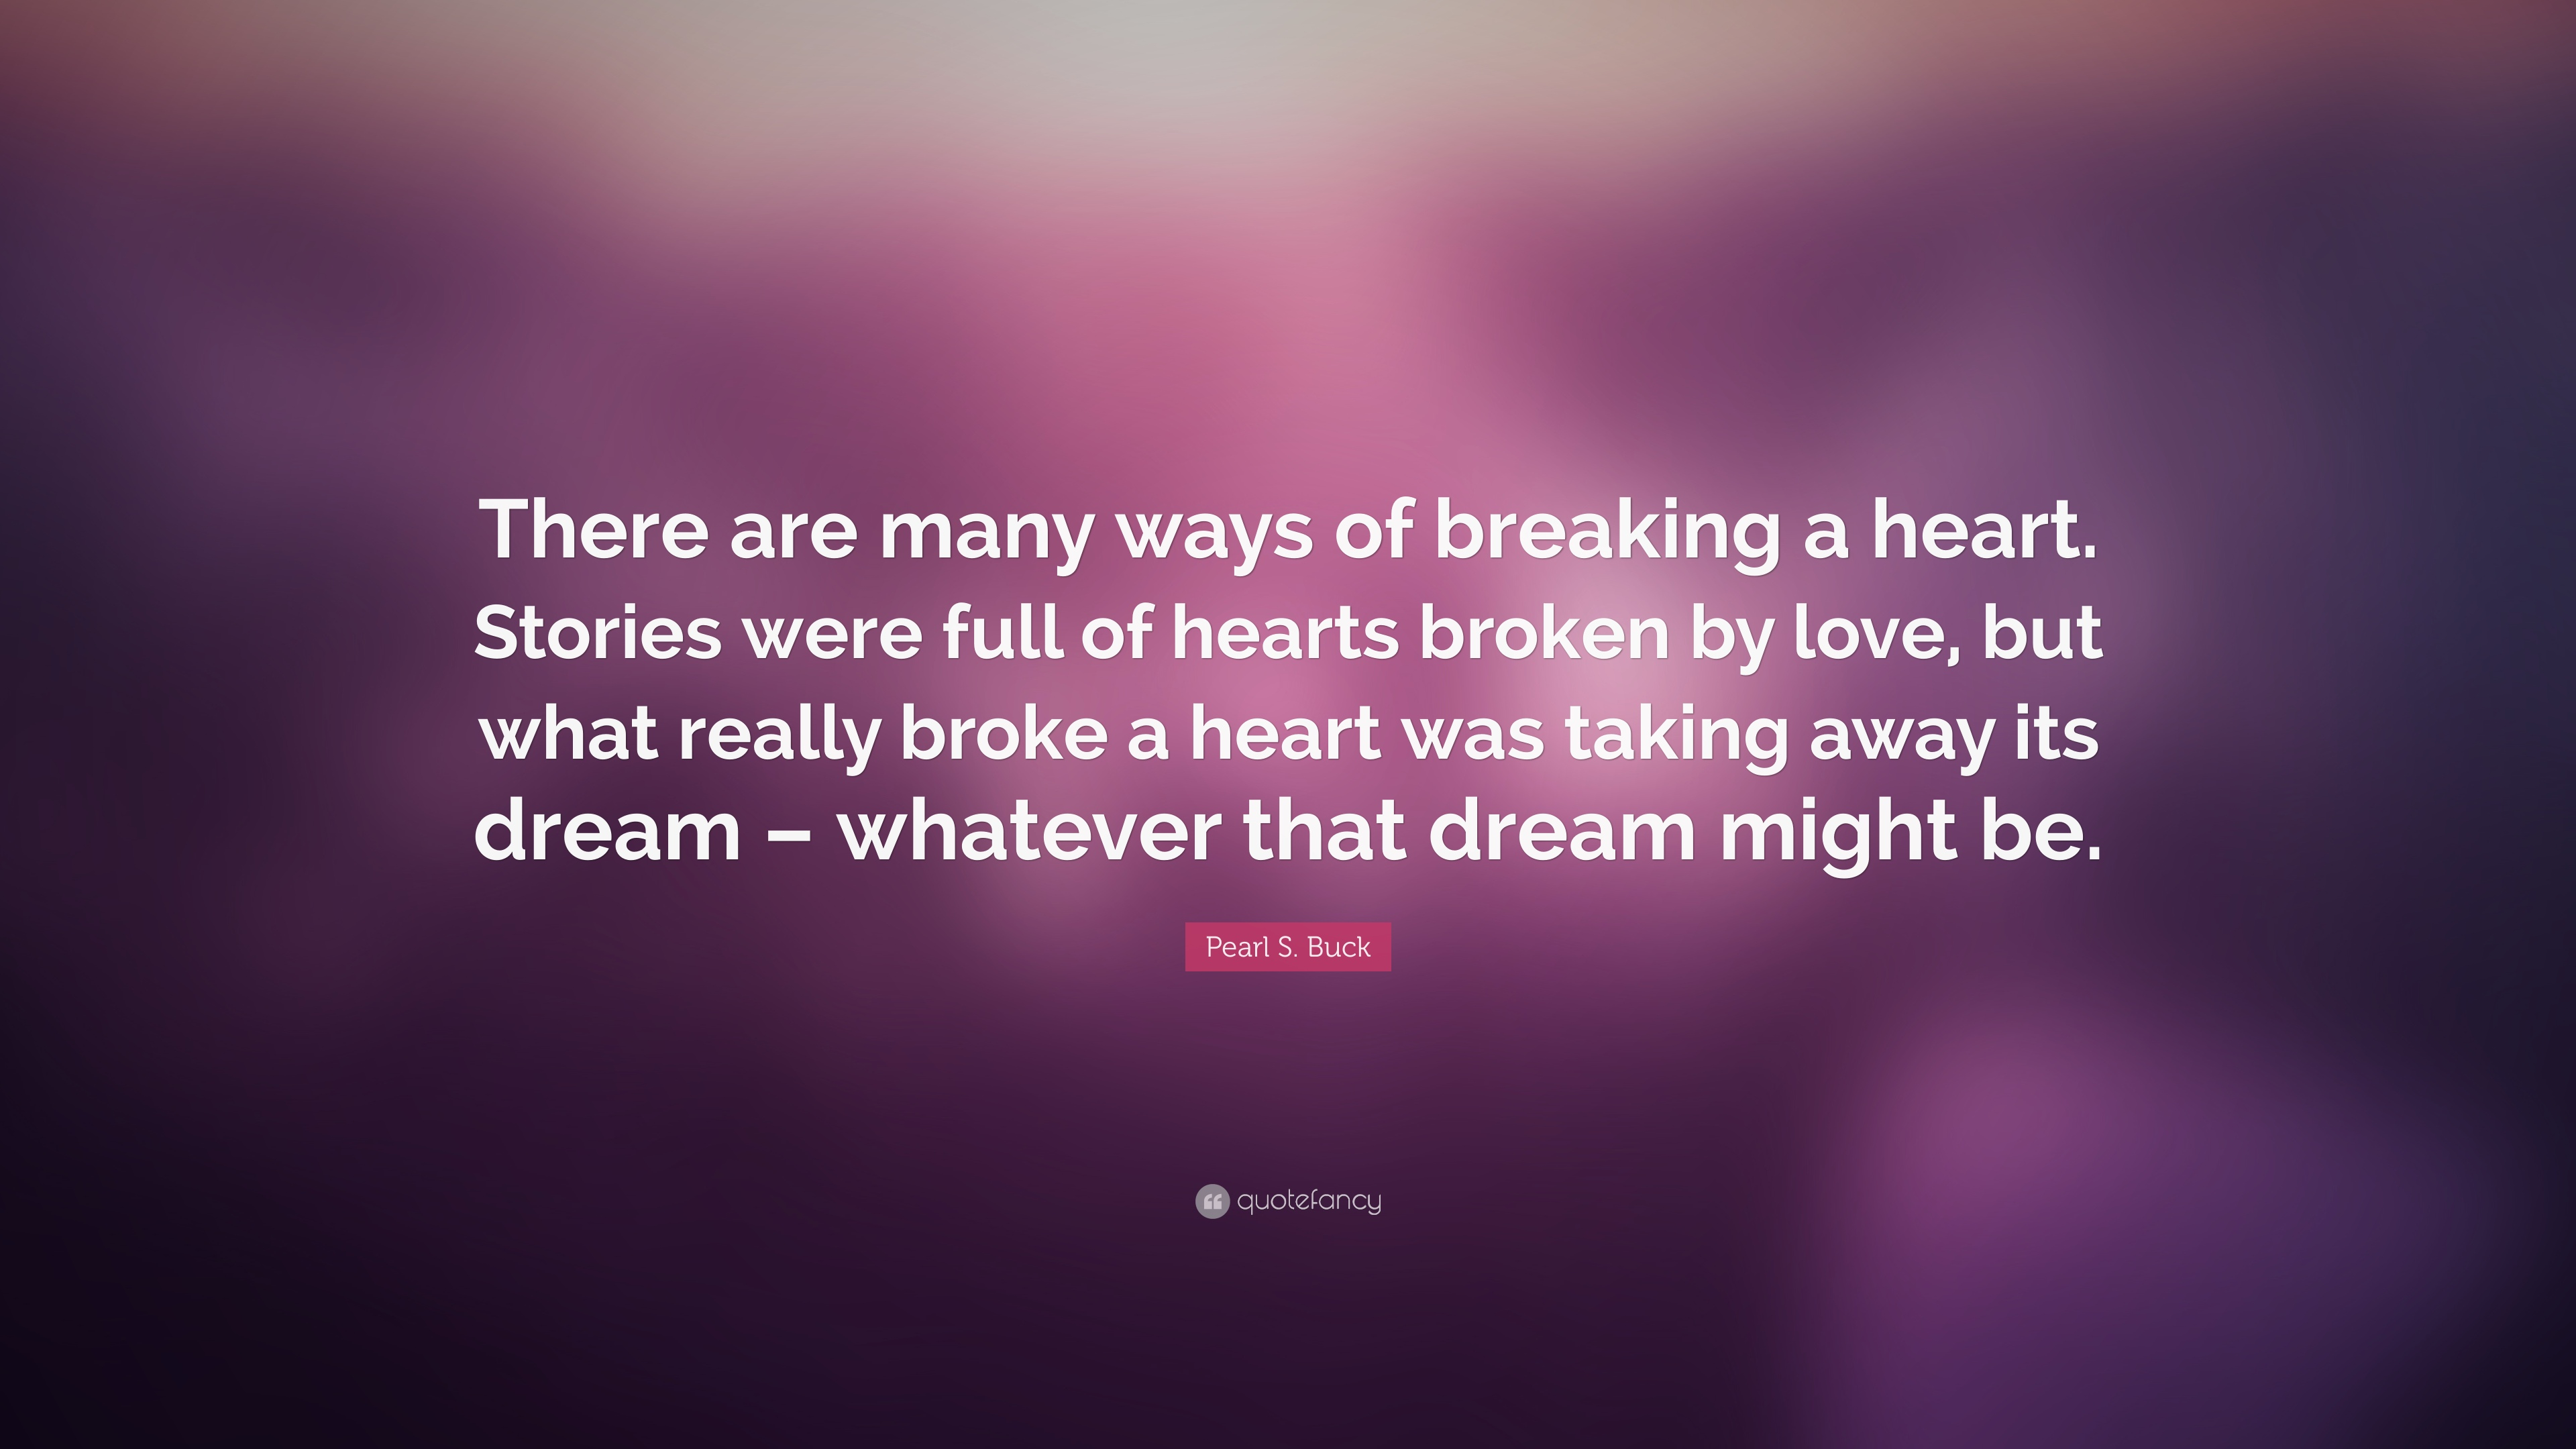 Broken Heart Quotes 40 Wallpapers Quotefancy